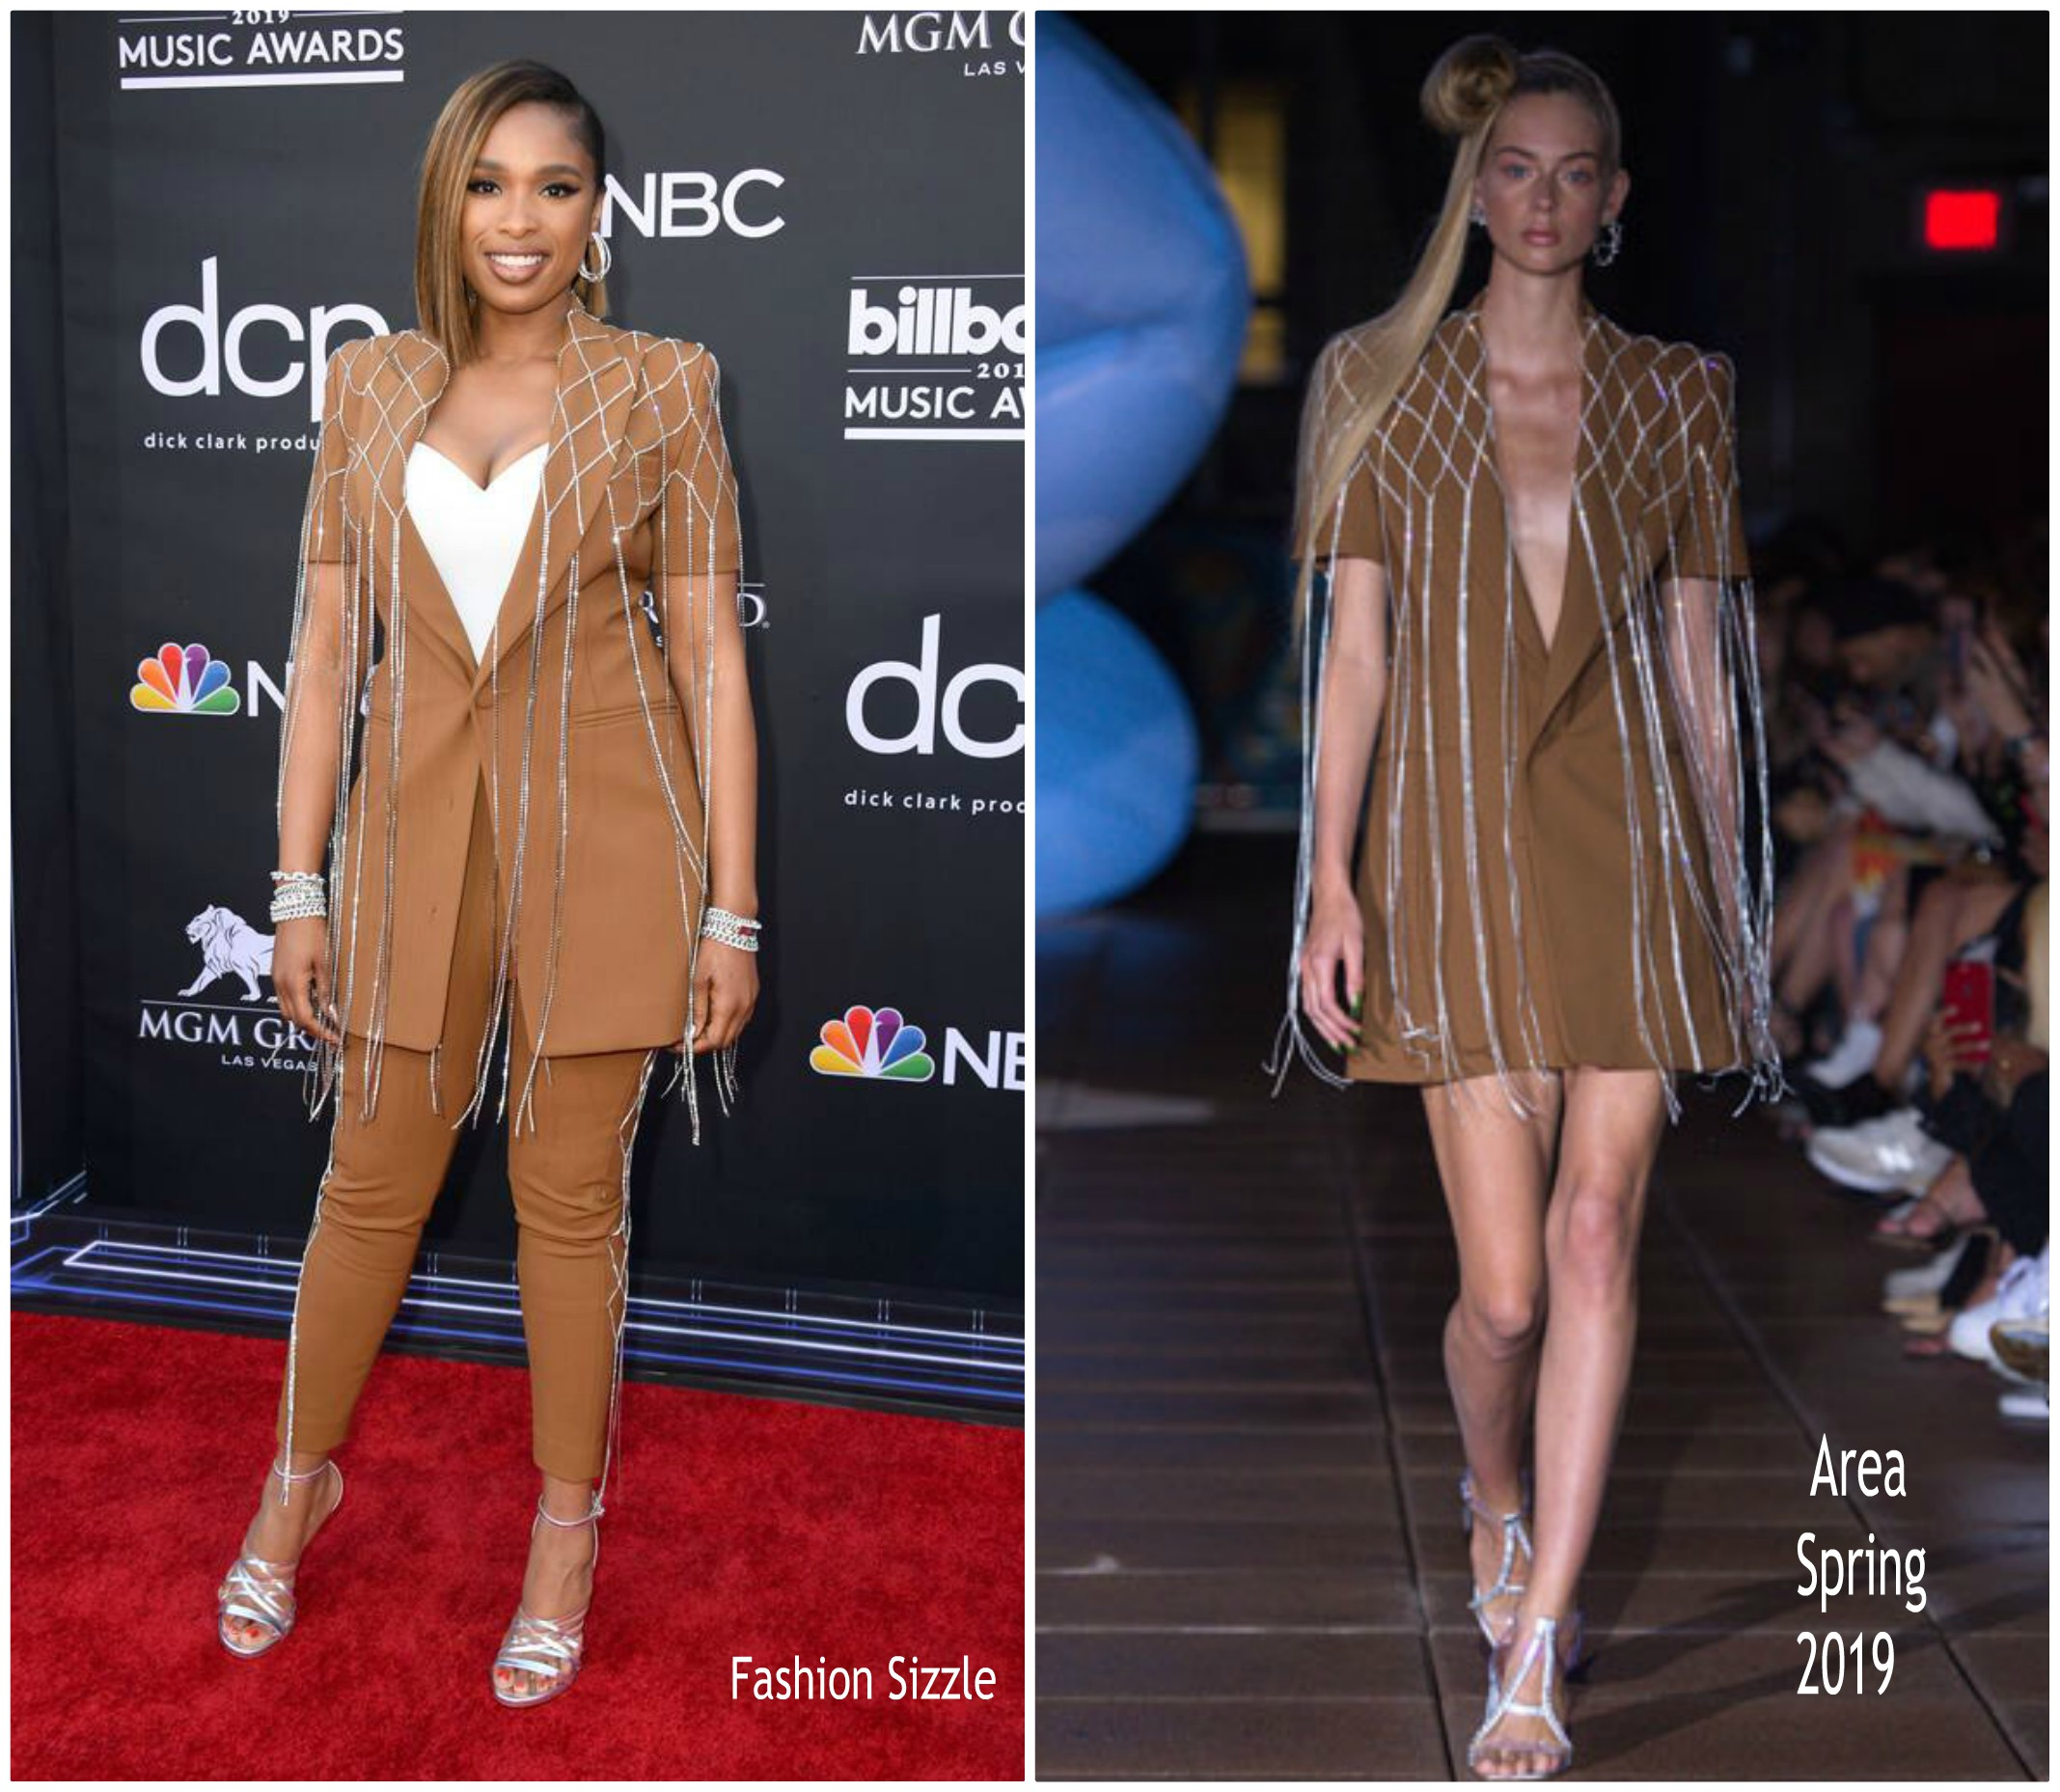 jennifer-hudson-in-area-2019-billboard-music-awards